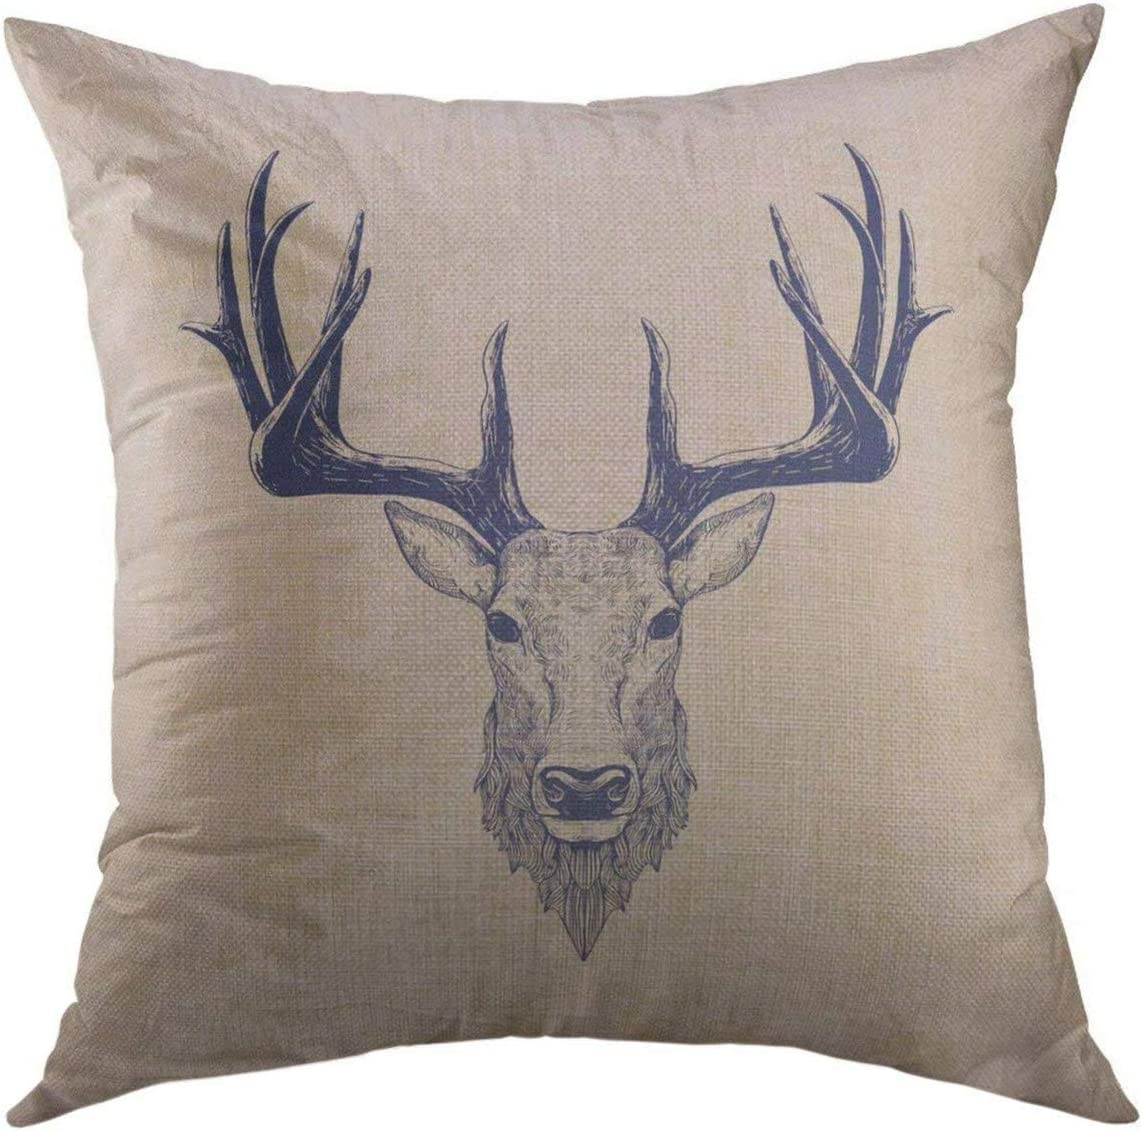 Mugod Decorative Throw Pillow Cover for Couch Sofa,Stag Deer Head Vintage HDrawn Christmas Home Decor Pillow Case 18x18 Inch